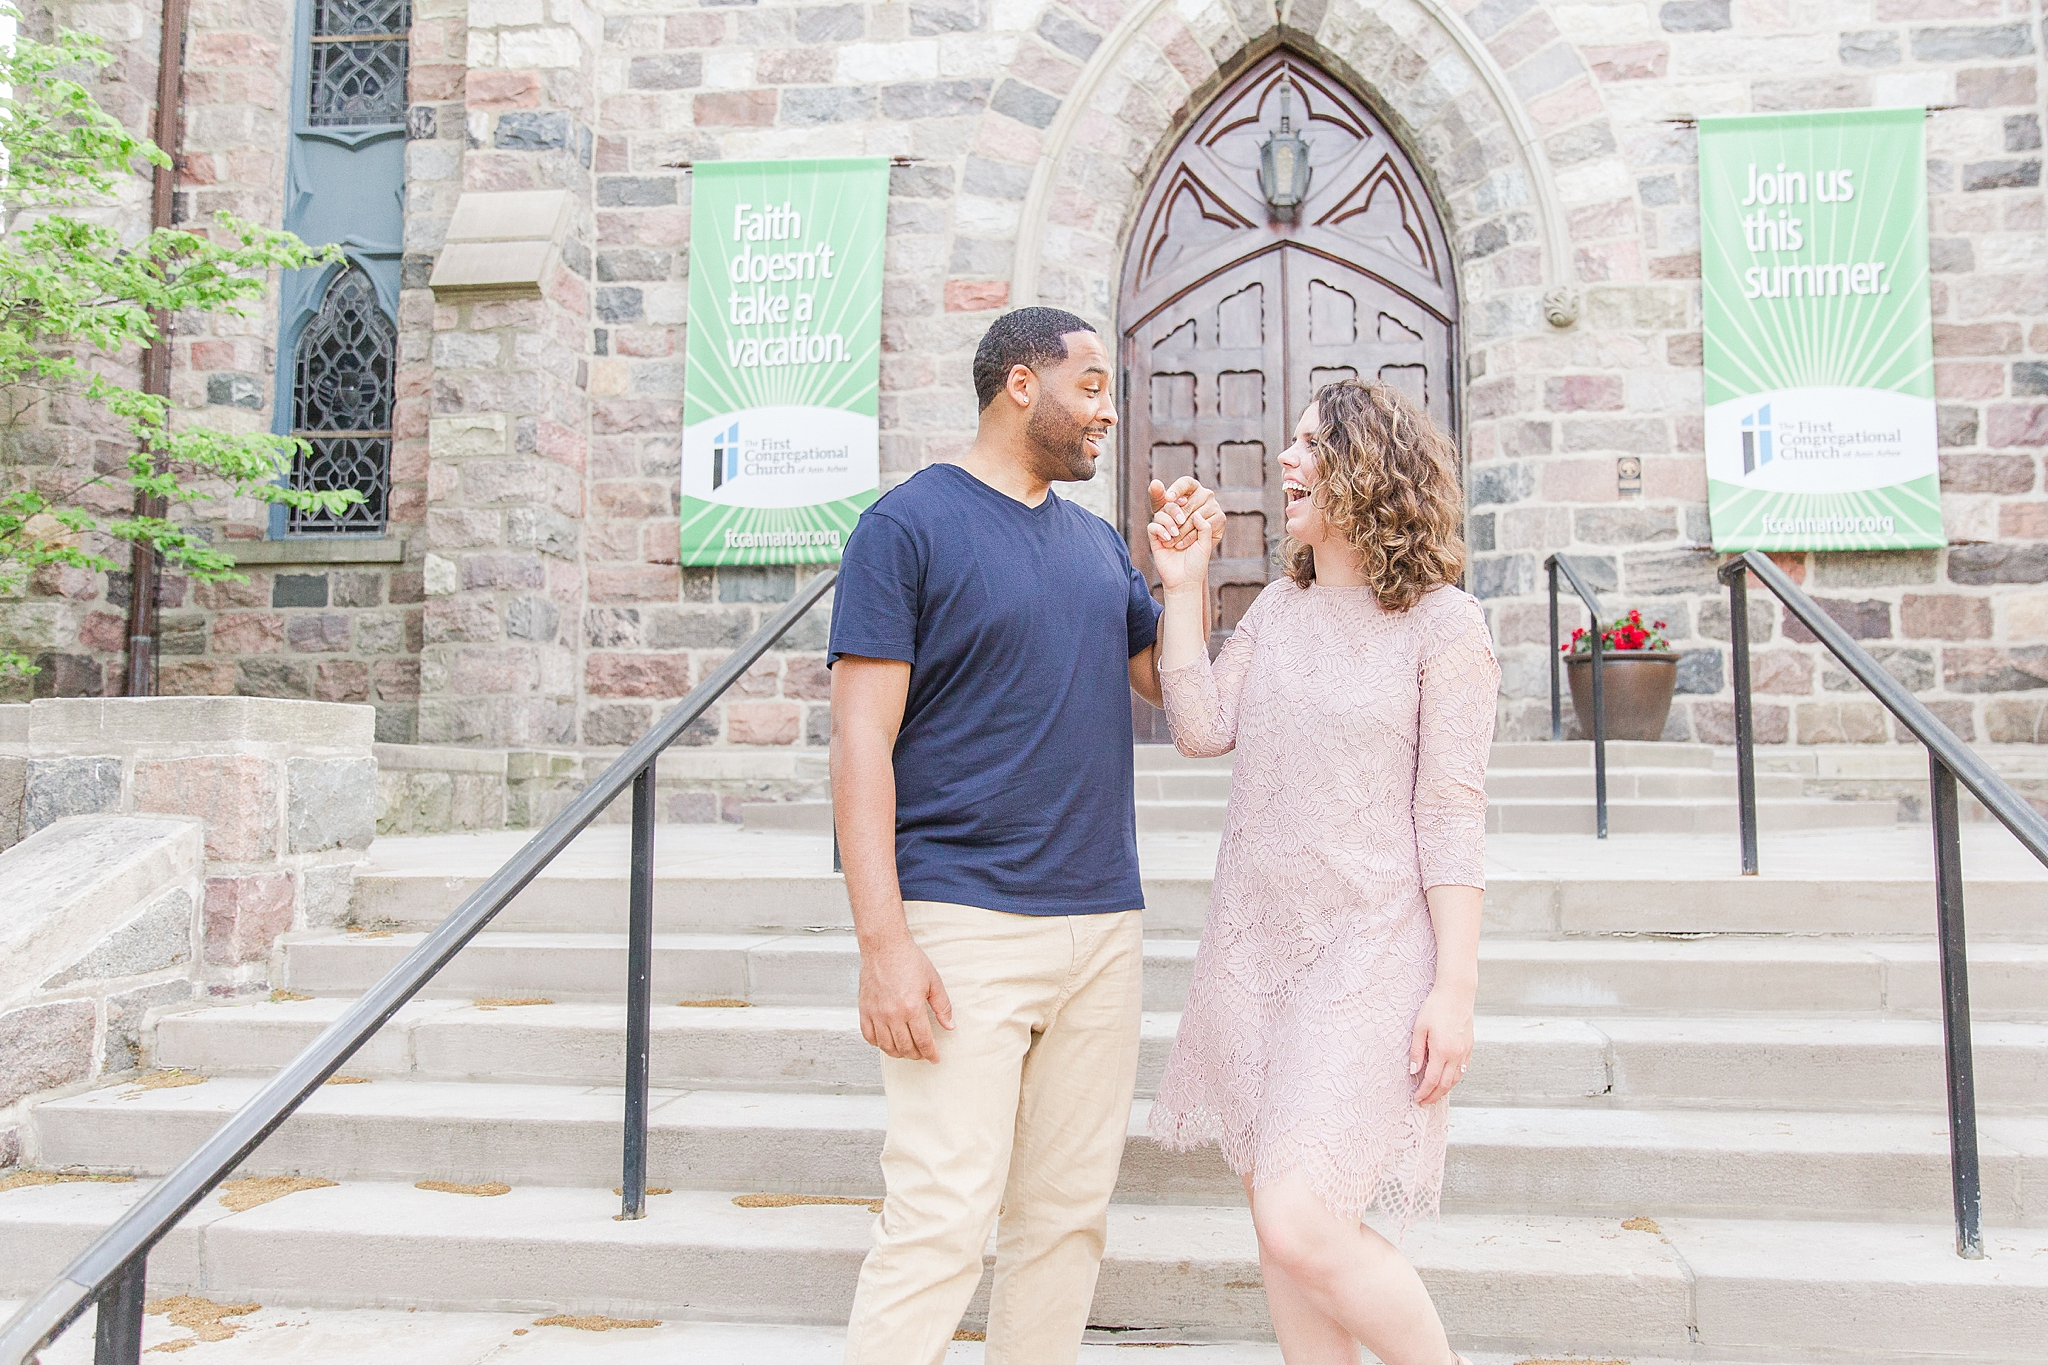 joyful-college-campus-engagement-photography-at-university-of-michigan-in-ann-arbor-mi-by-courtney-carolyn-photography_0020.jpg